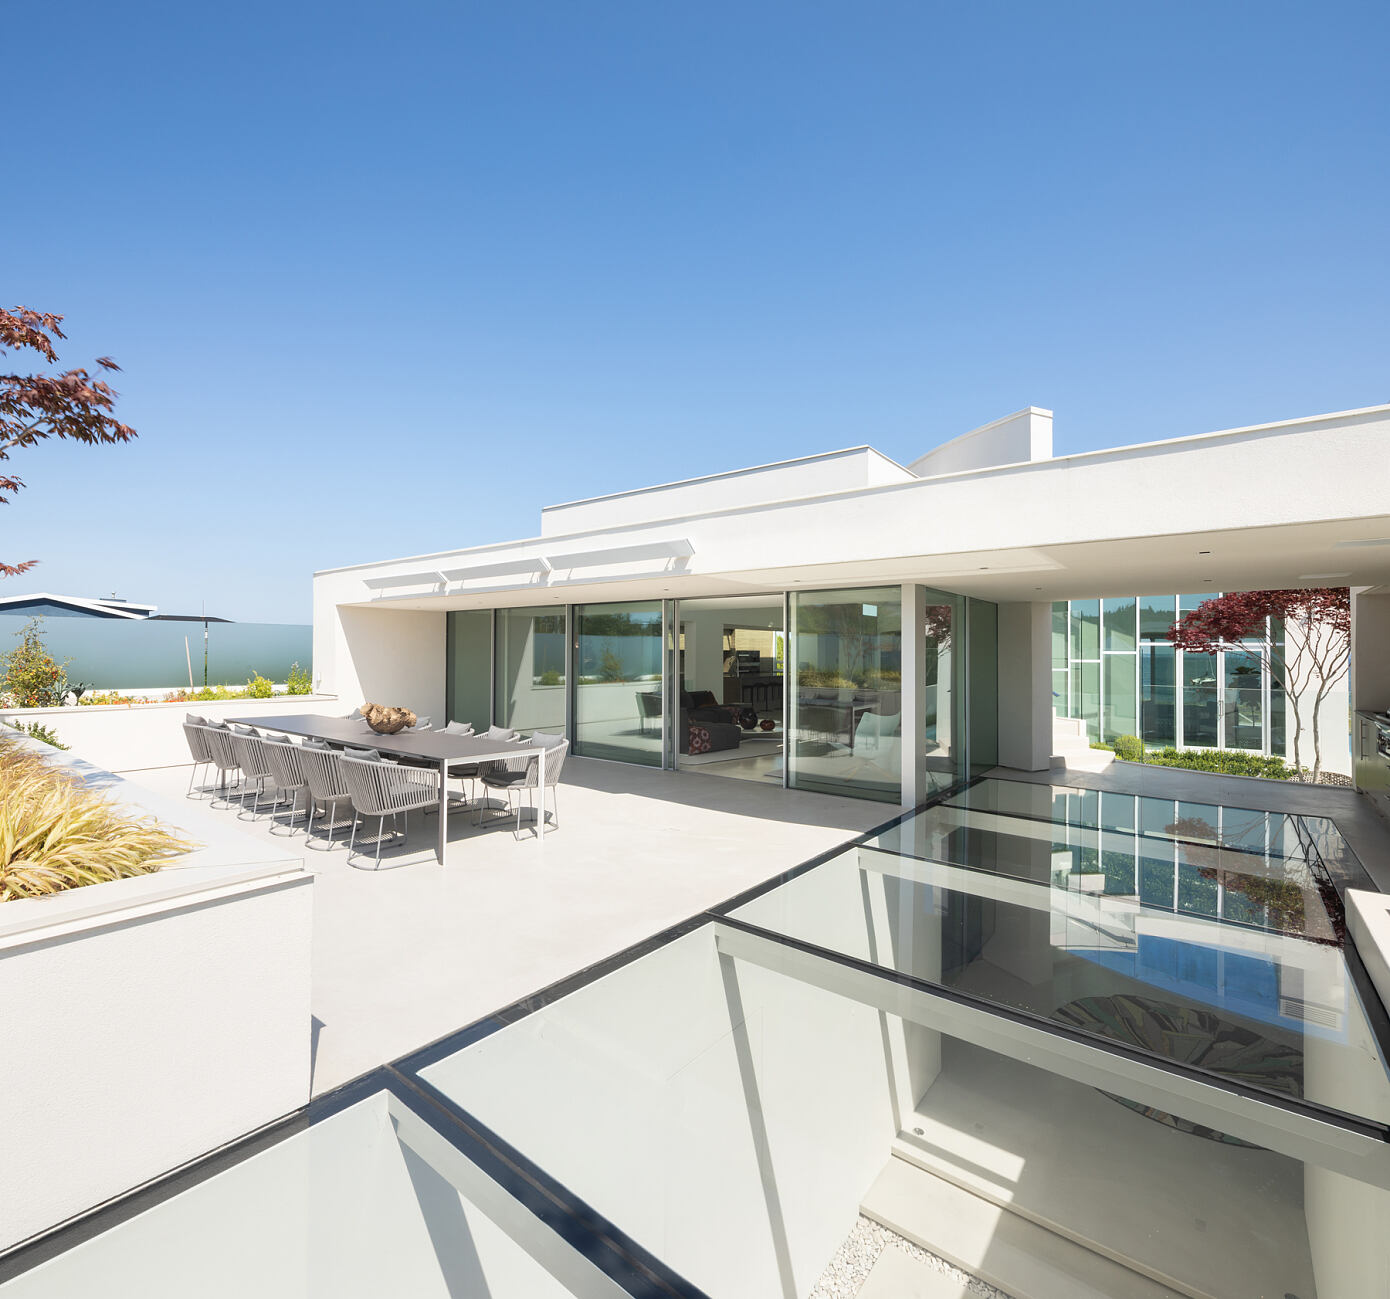 Boundary Bay Residence by Frits de Vries Architects